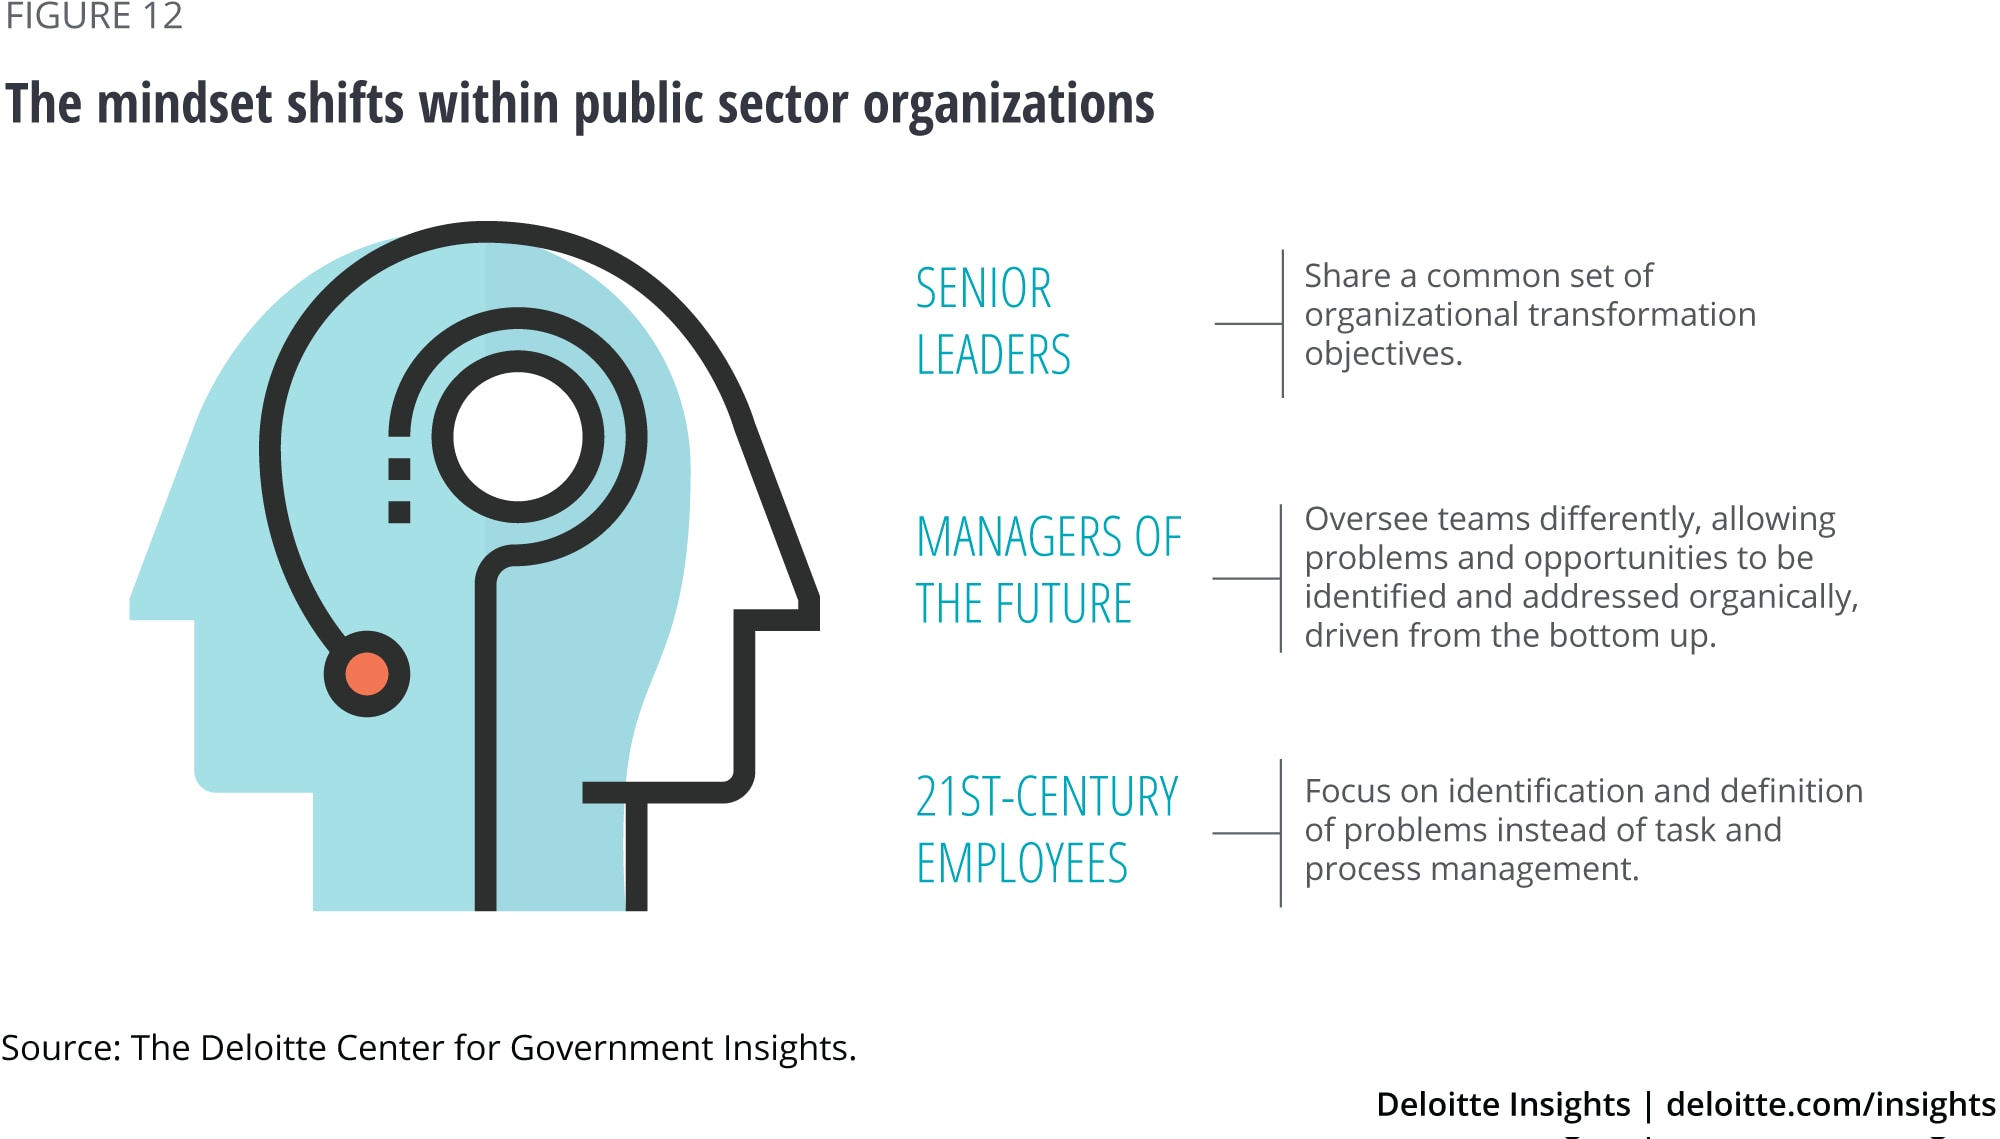 The mindset shifts within public sector organizations